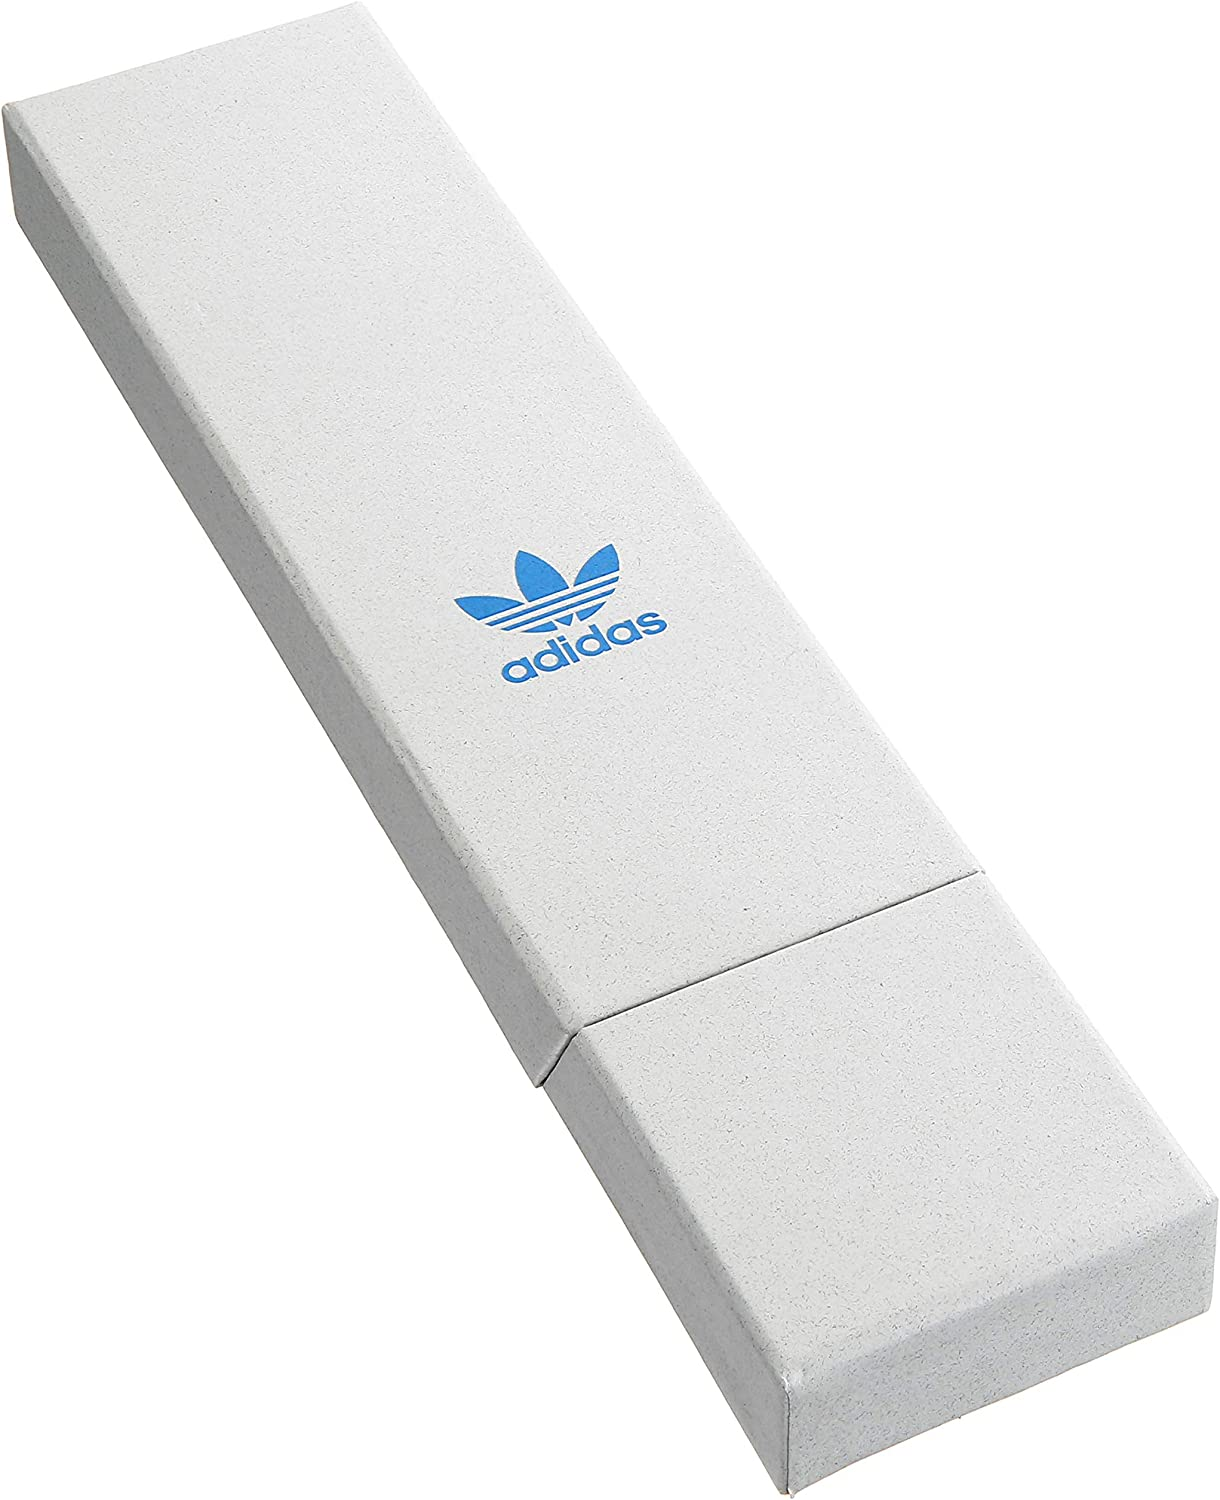 adidas Watches Process_SP1. Silicone Strap, 20mm Width (38 mm). All White